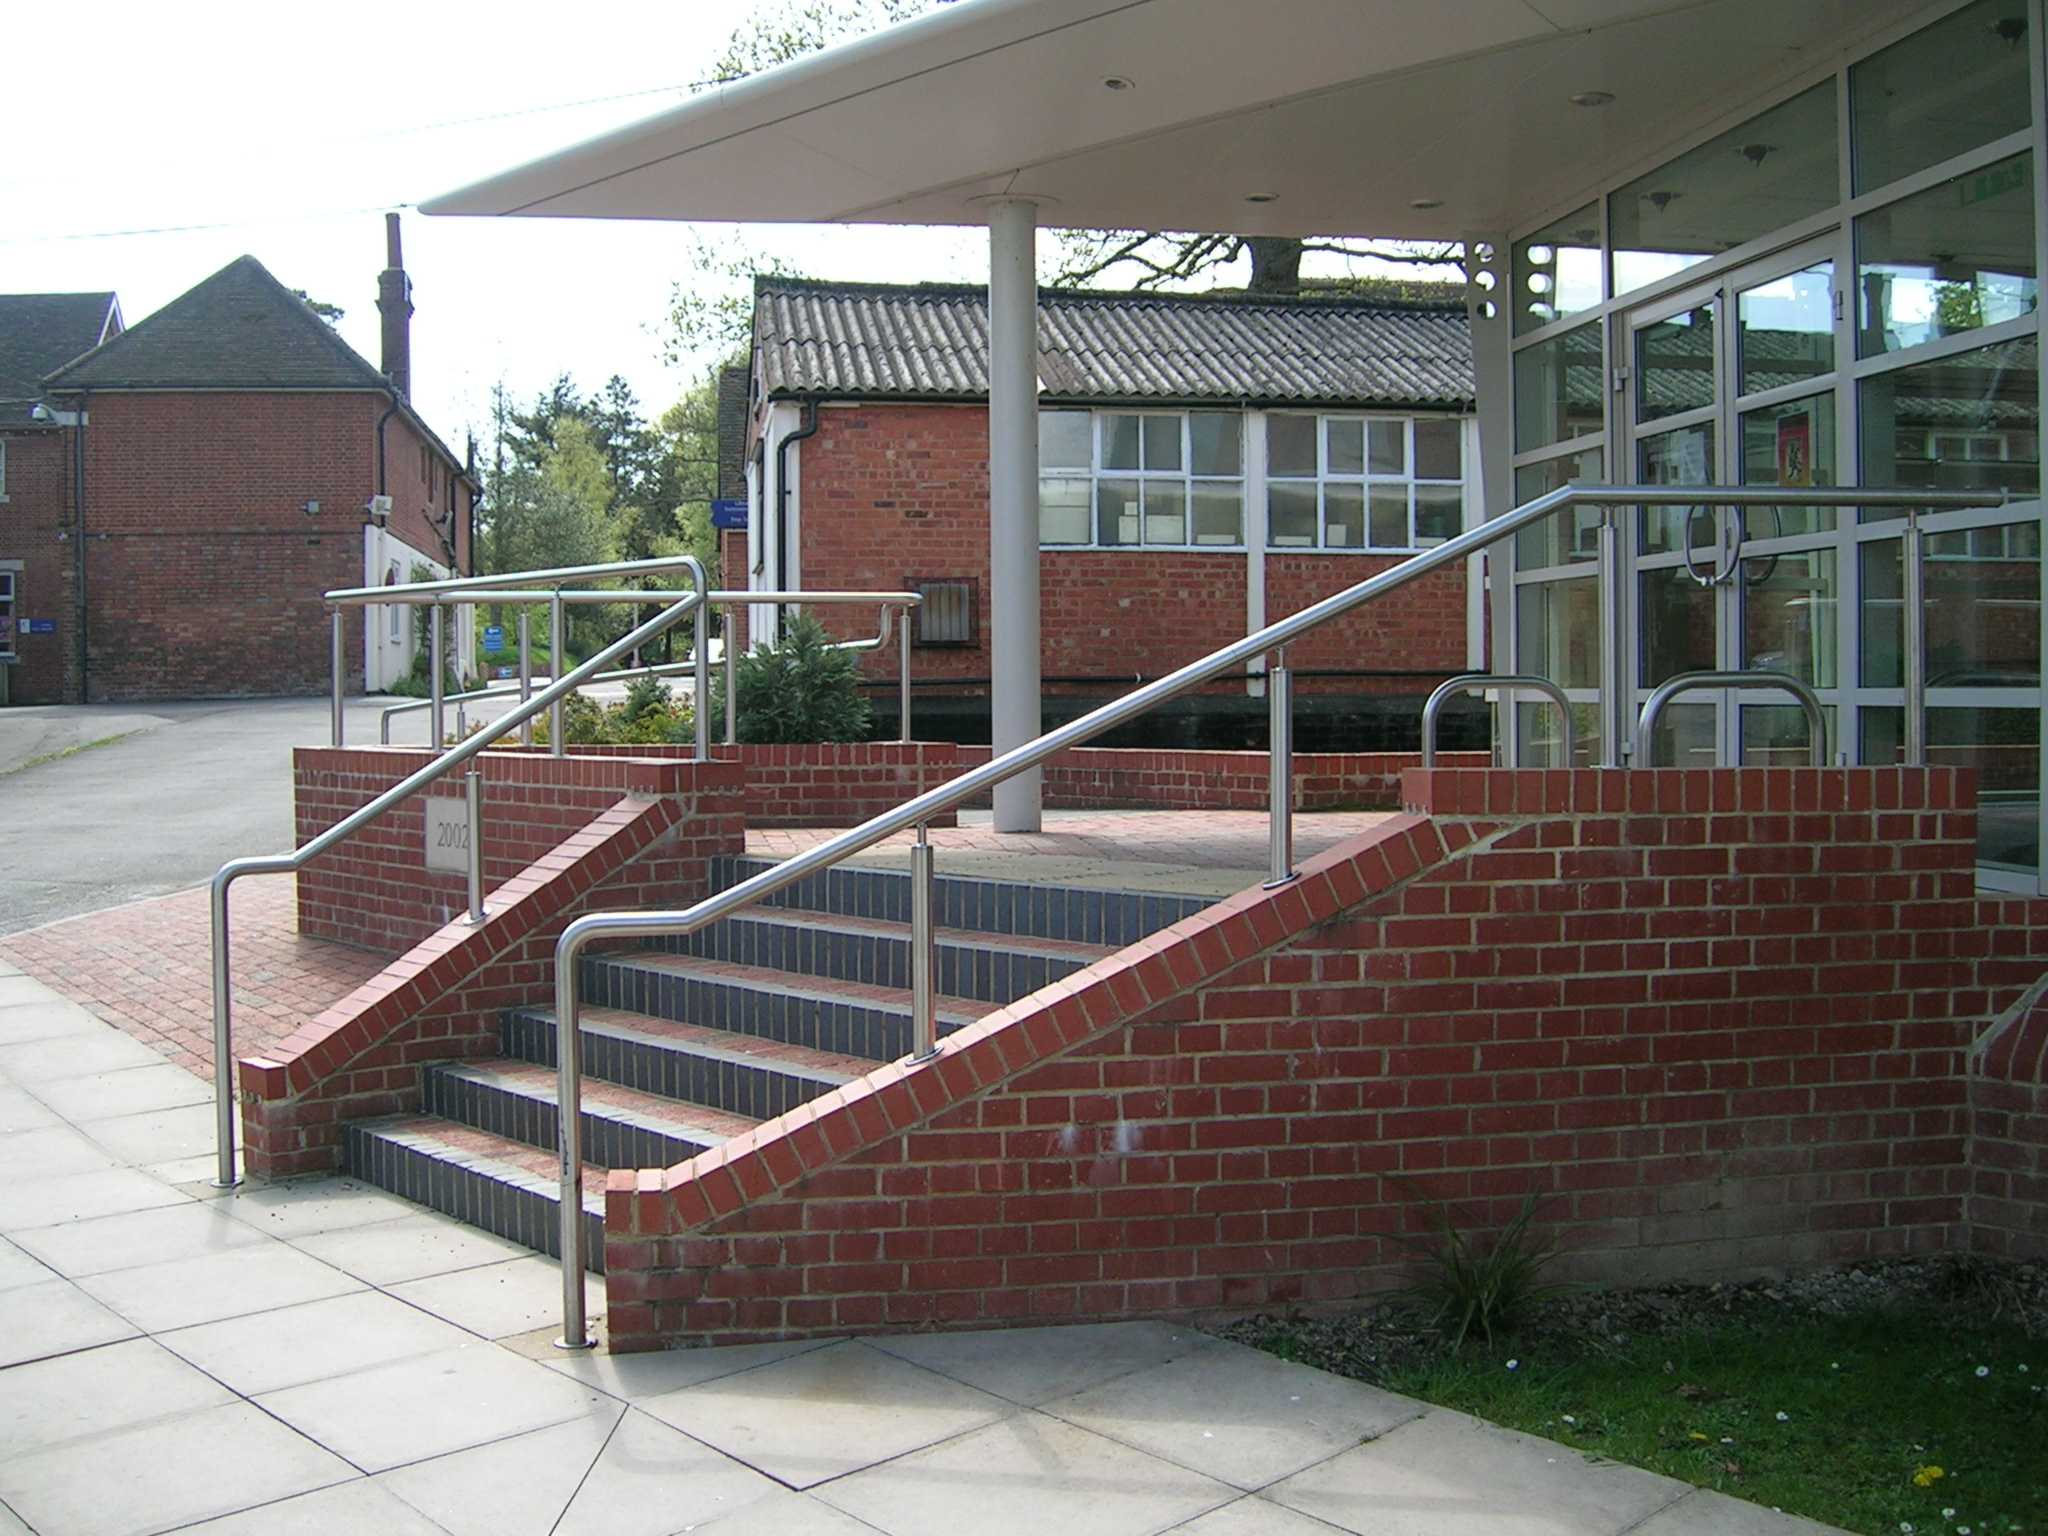 Stainless steel handrail on exterior steps